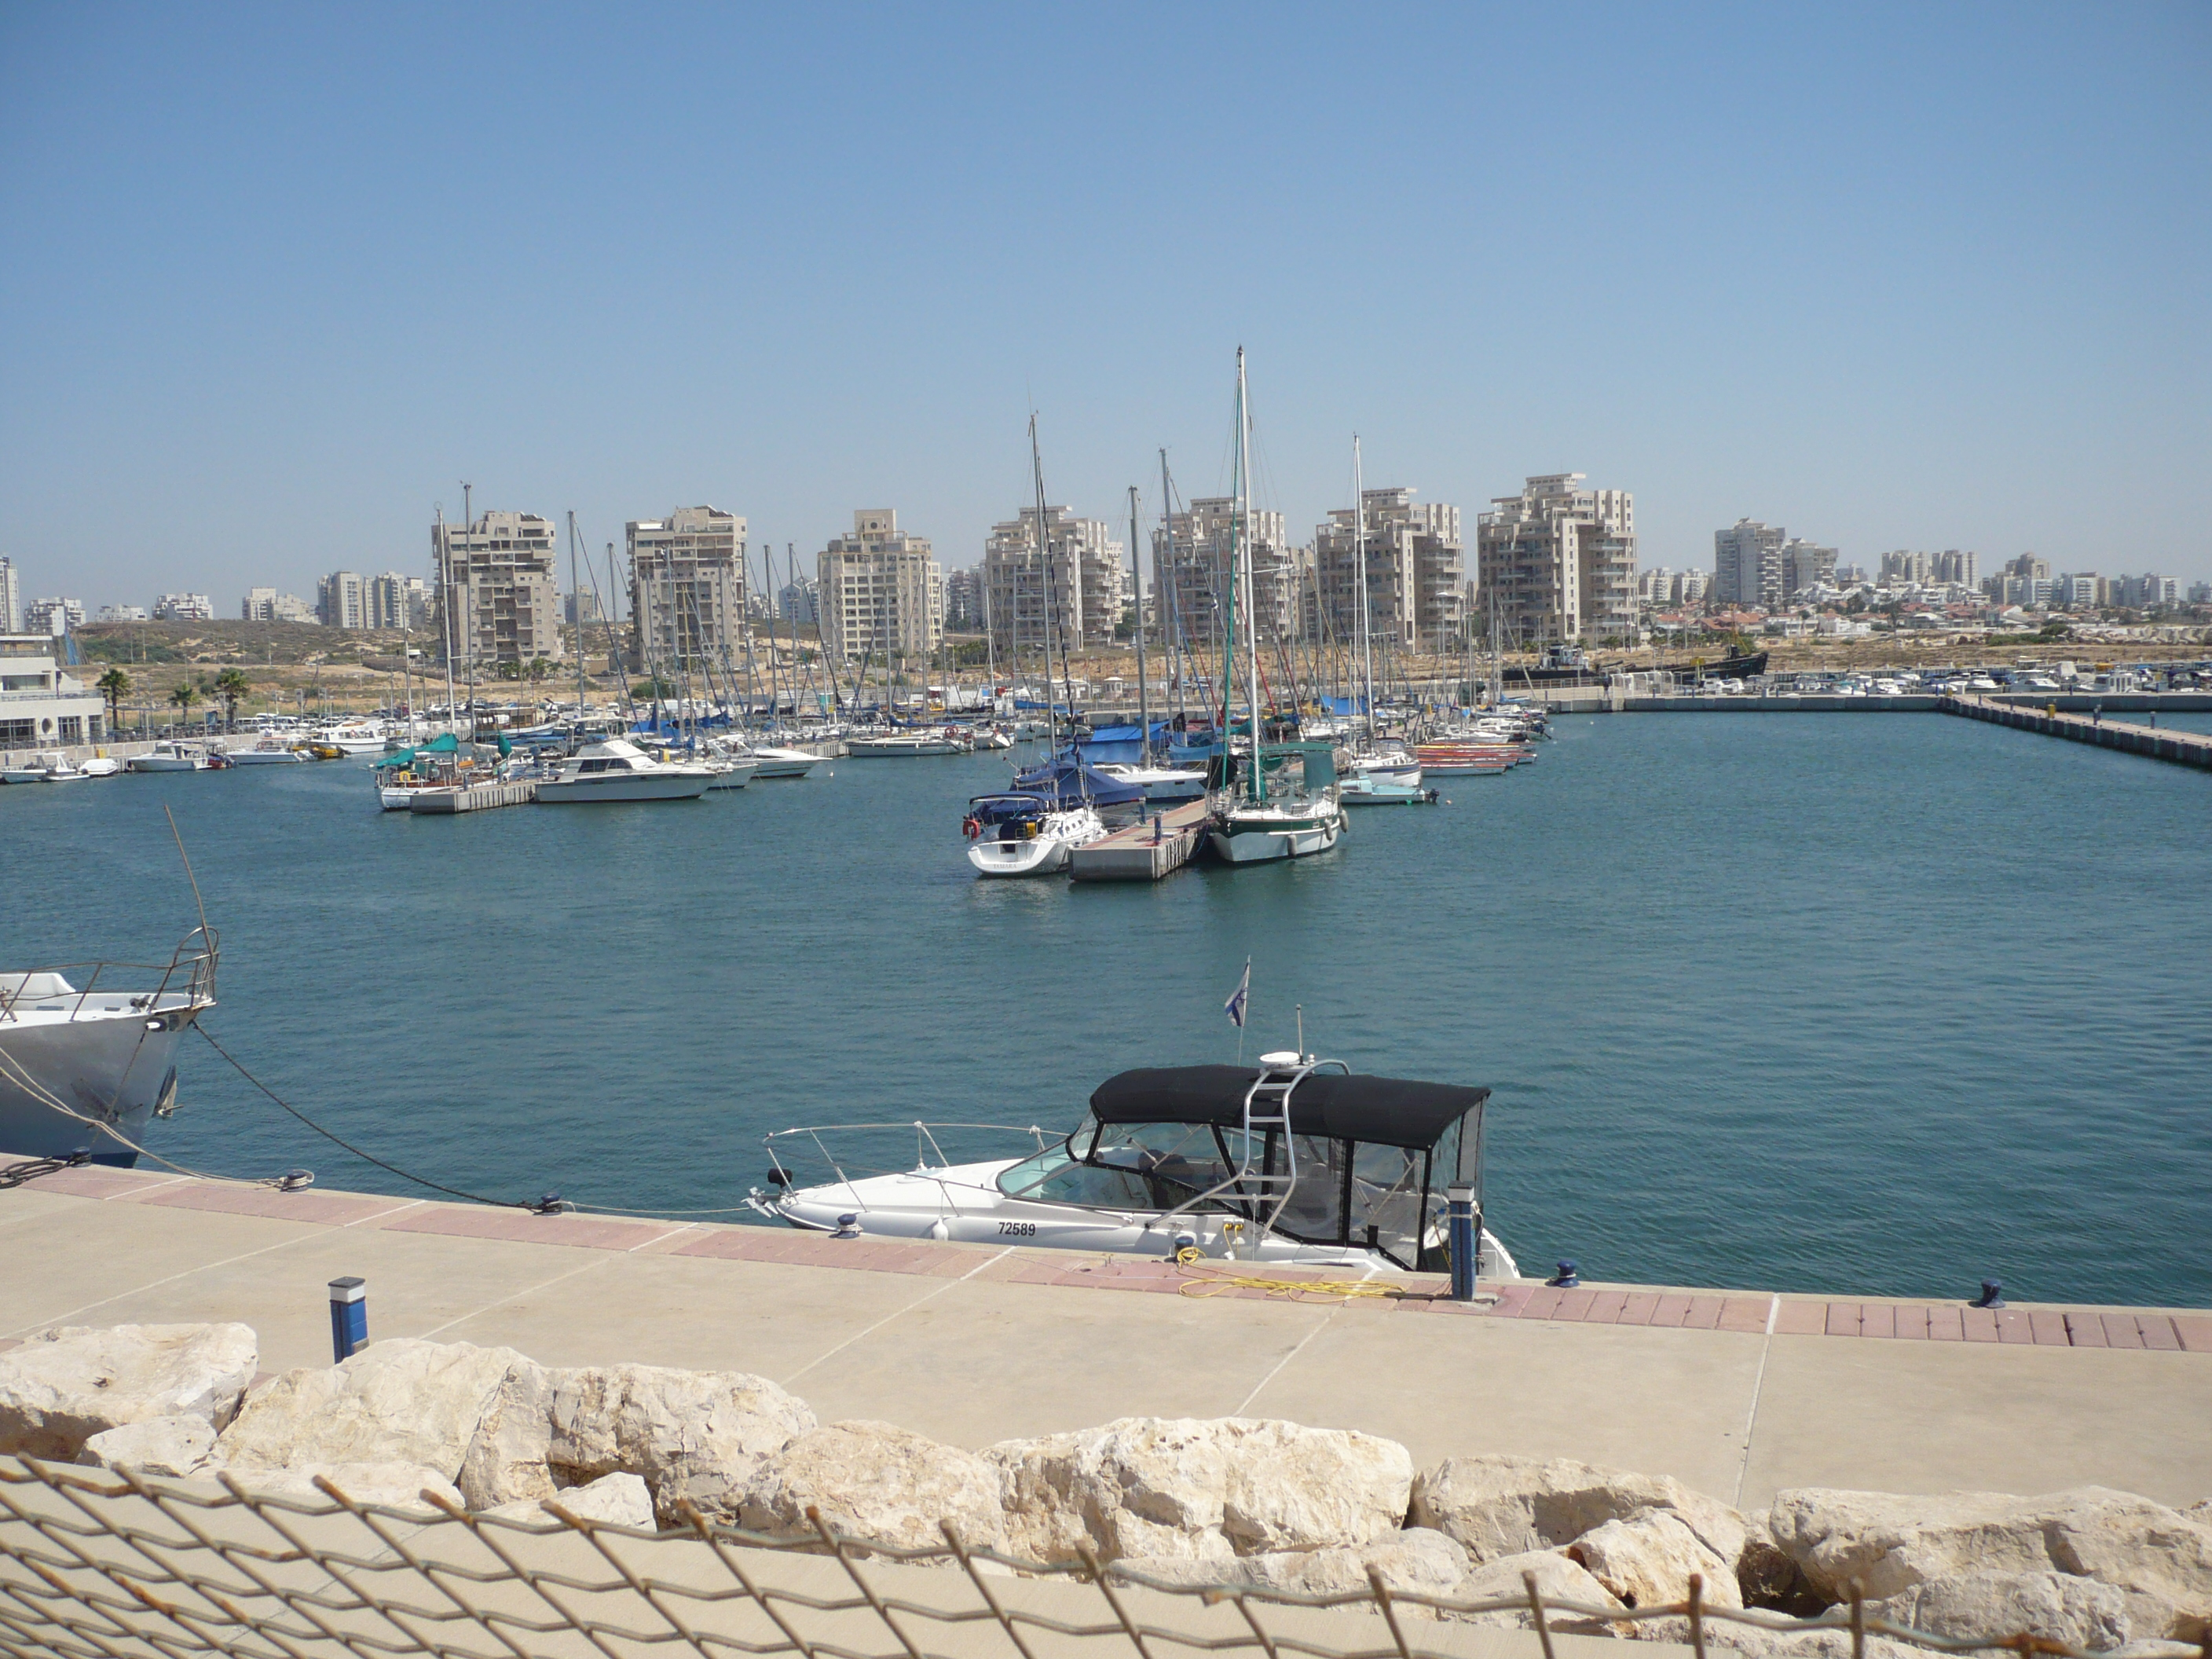 Ashdod Israel  City pictures : Description Ashdod marina